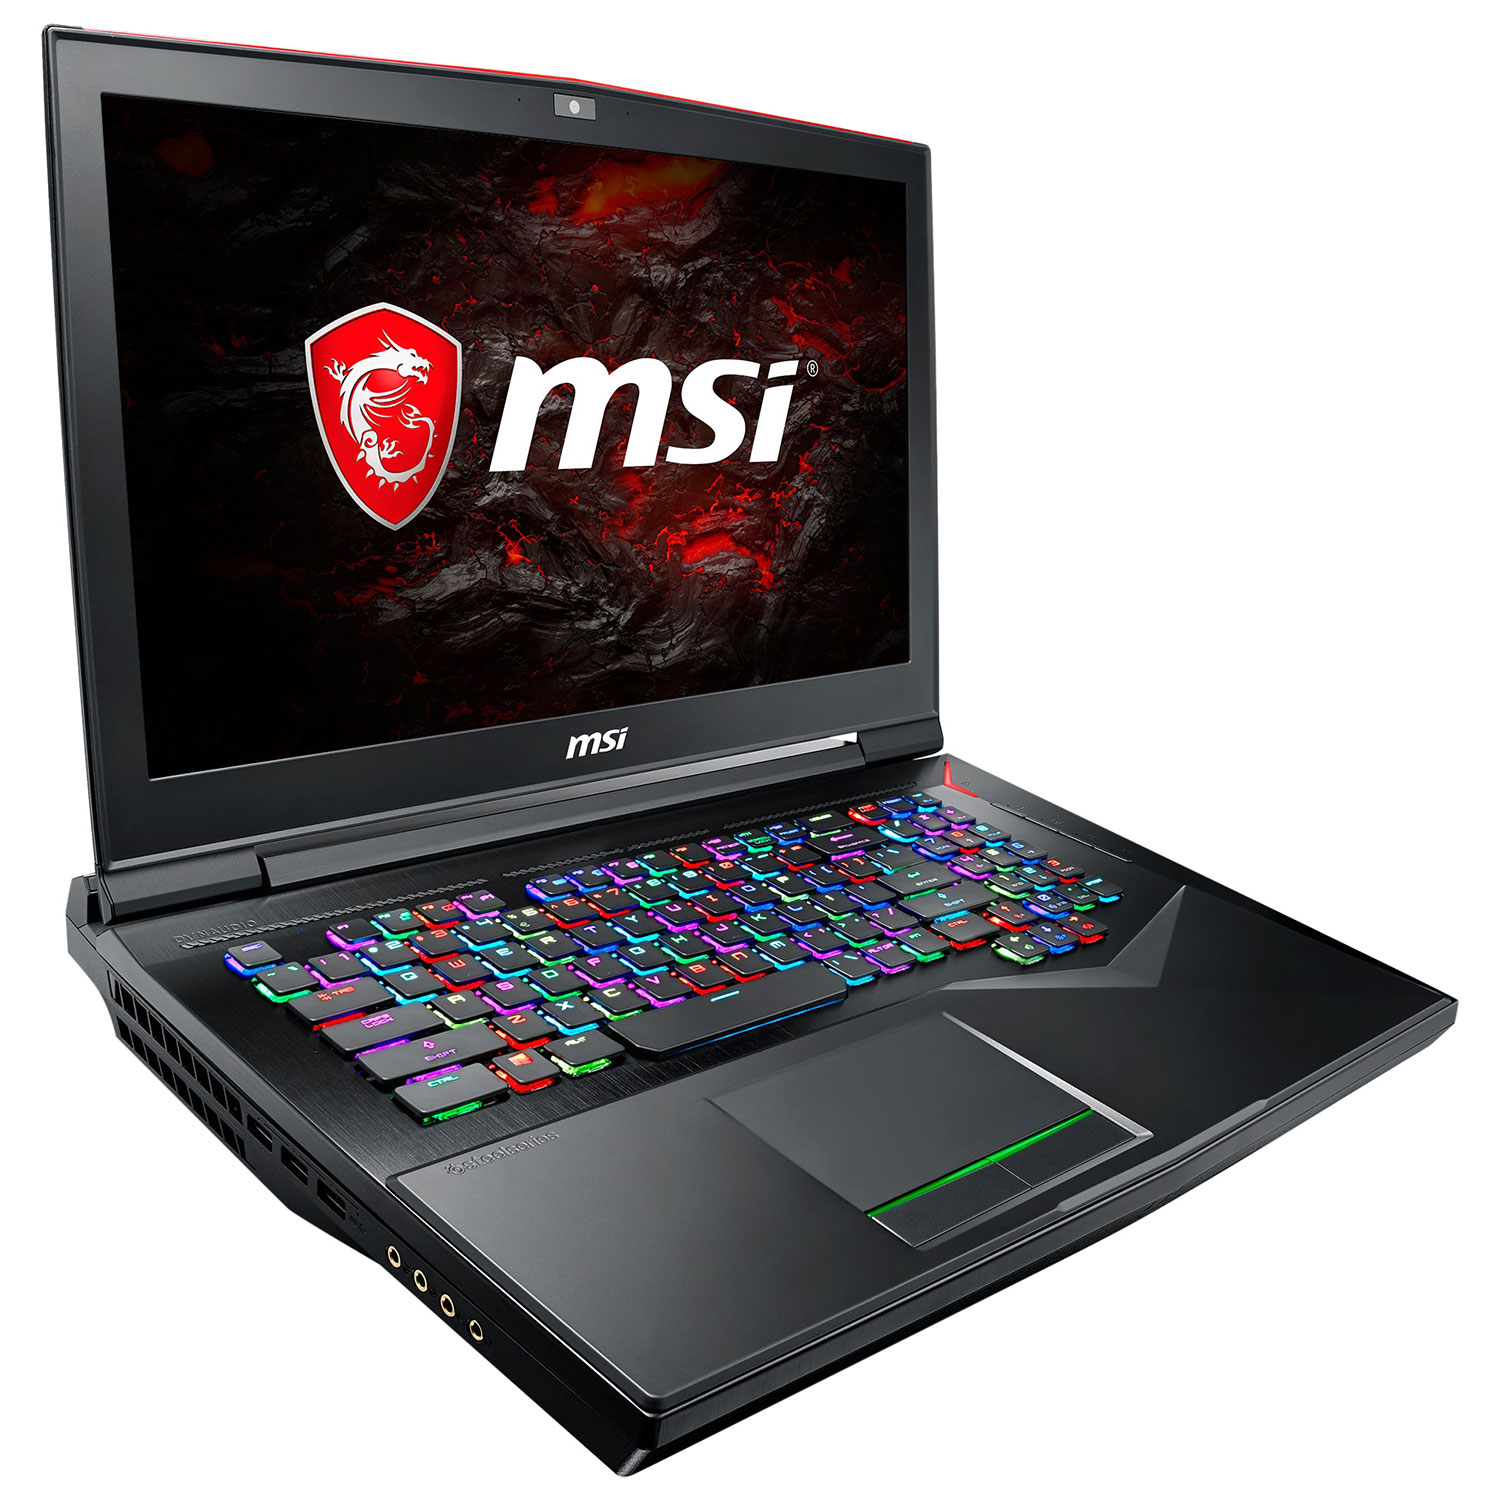 msi laptop how to get good for gaming